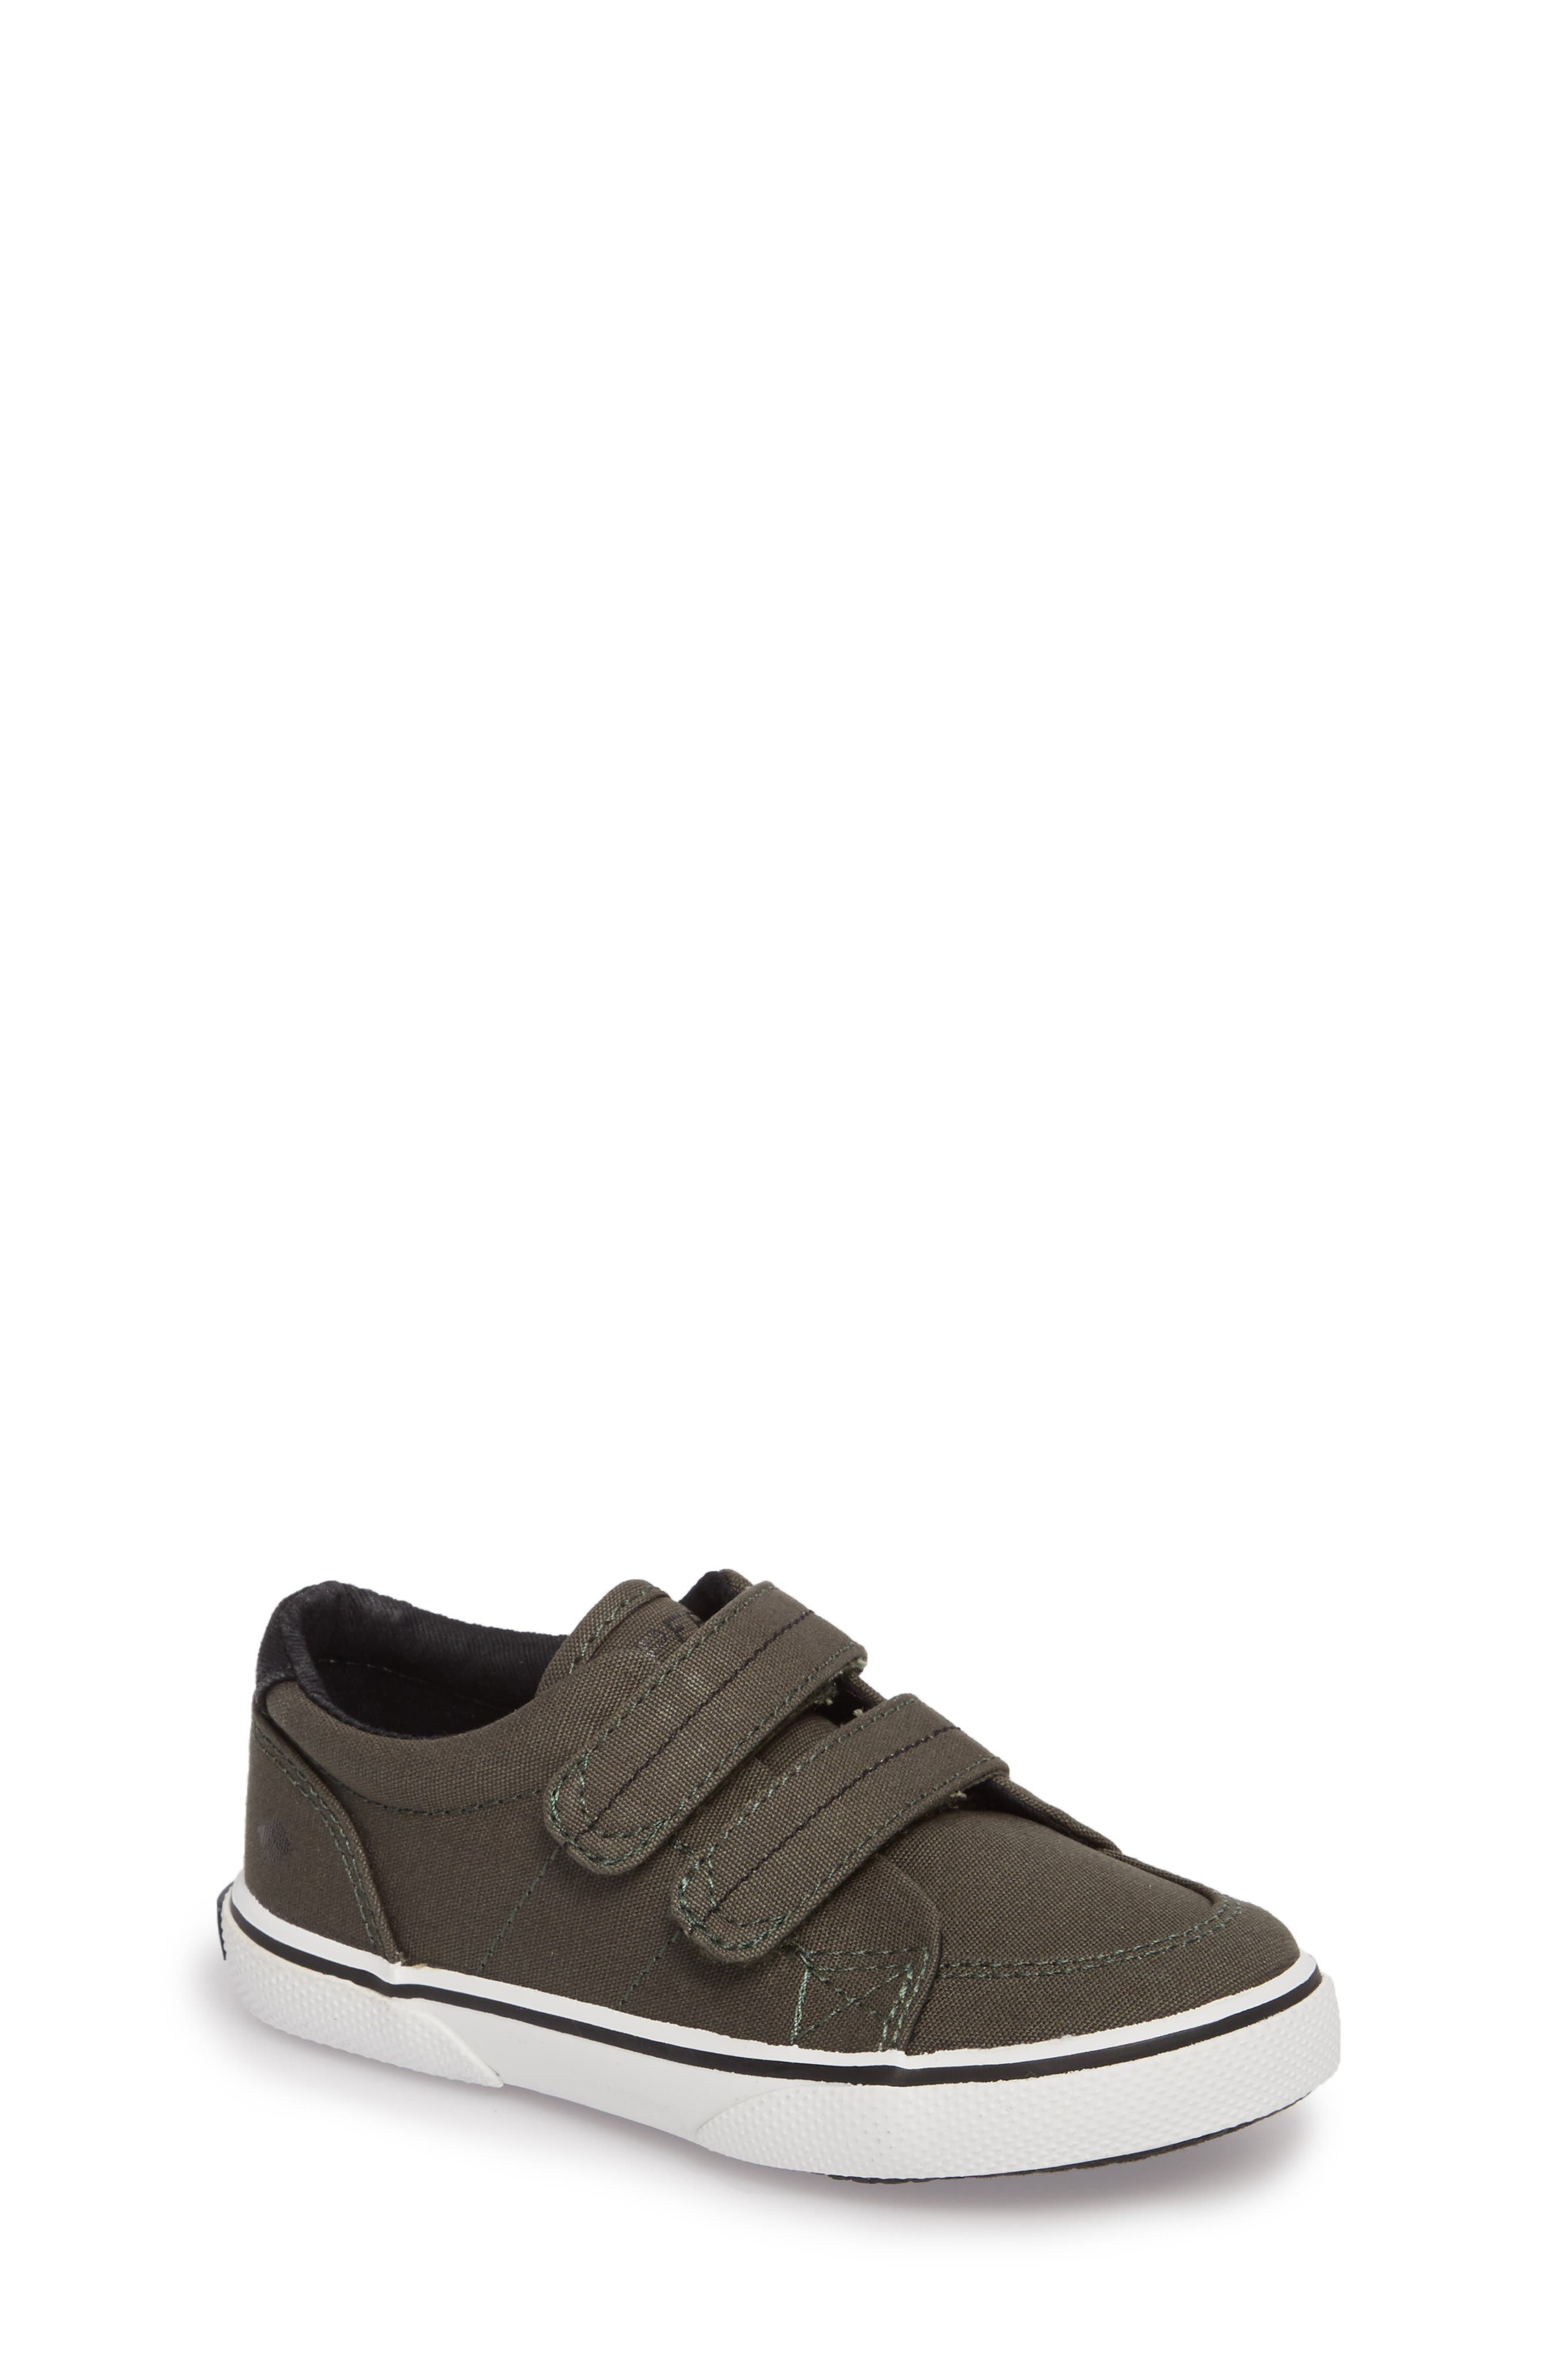 Sperry Top-Sider<sup>®</sup> Kids 'Halyard' Sneaker,                             Main thumbnail 2, color,